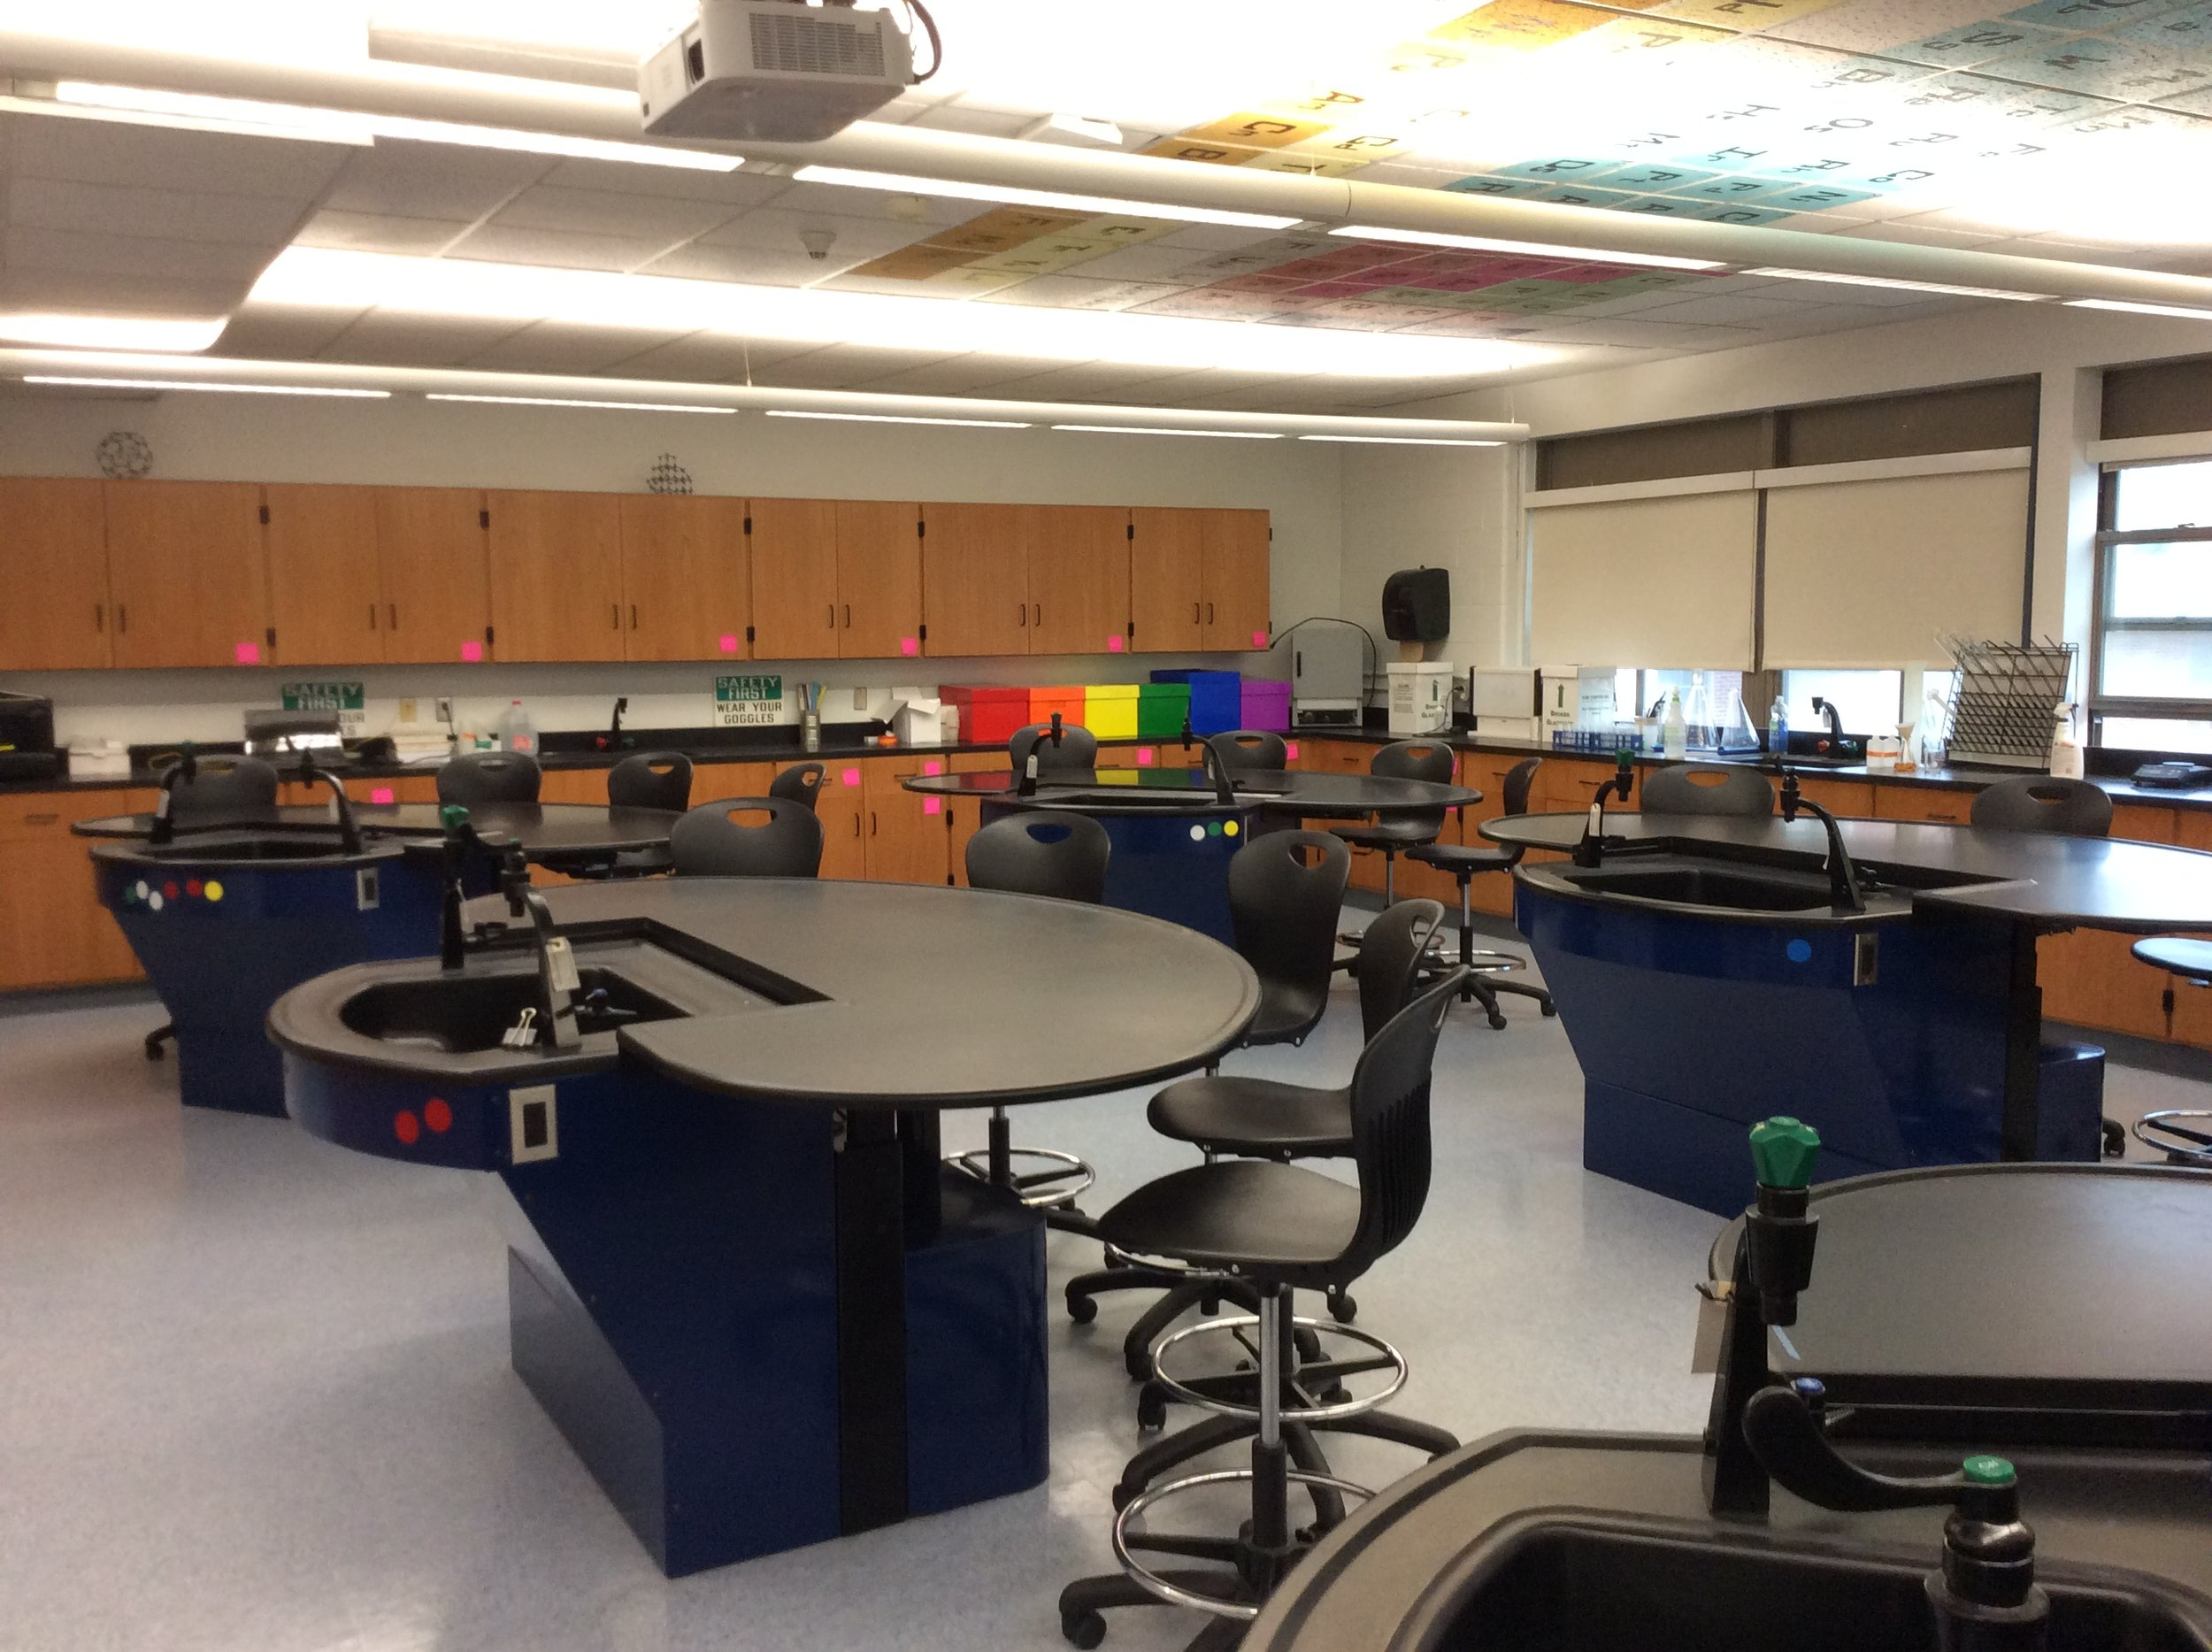 K-12 Academic - Educational Science Laboratories